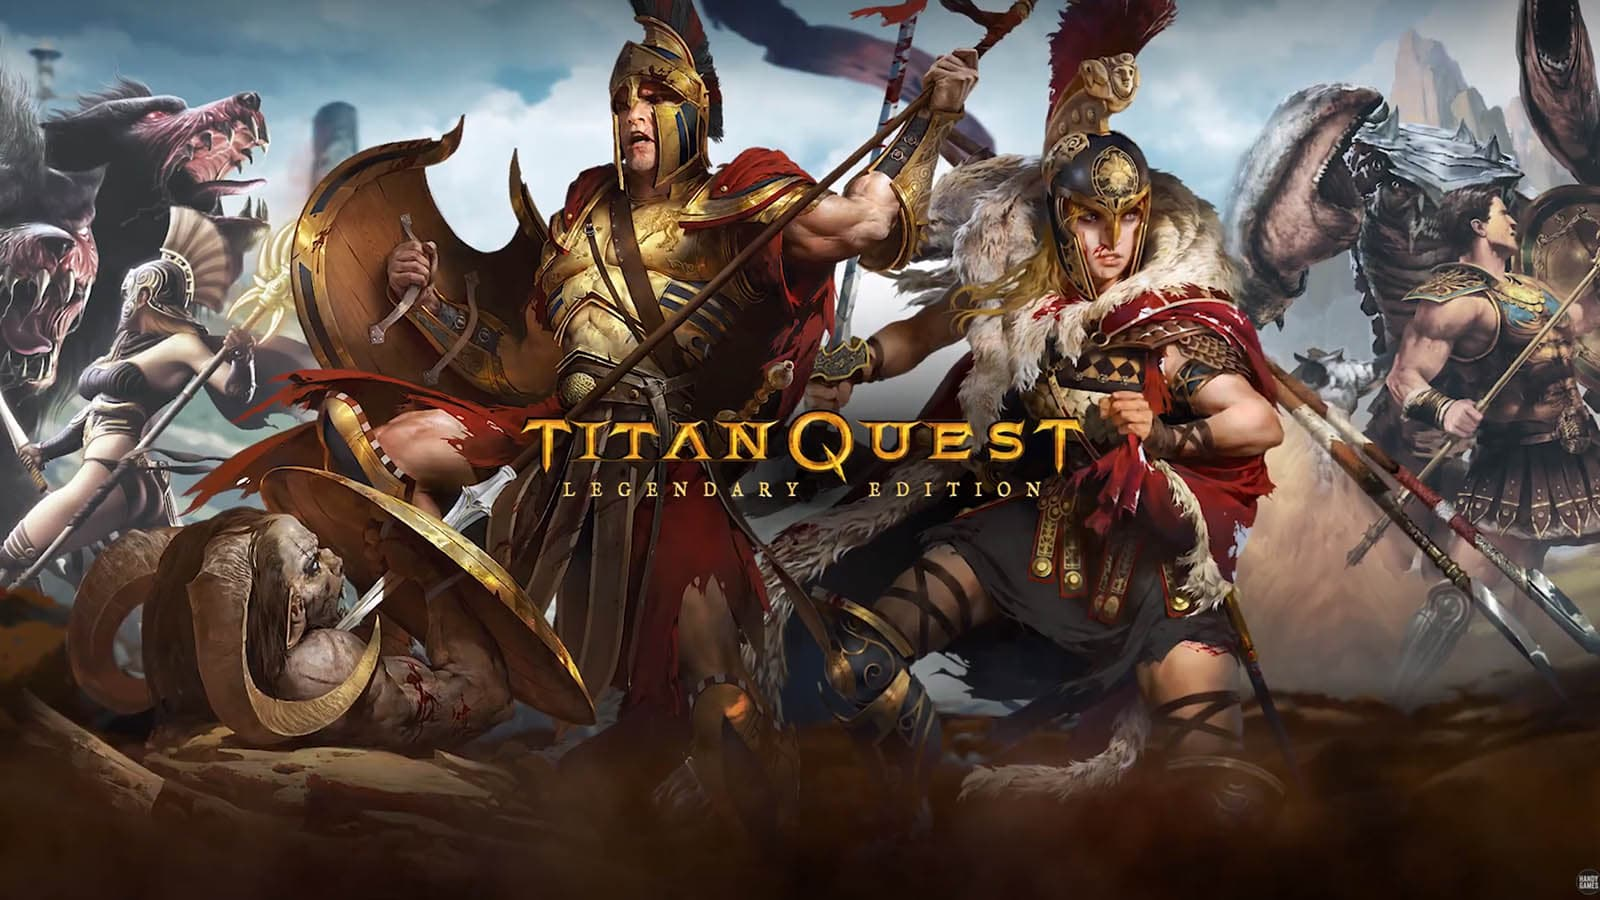 Titan Quest Legendary Edition releases on Chromebooks with controller support coming